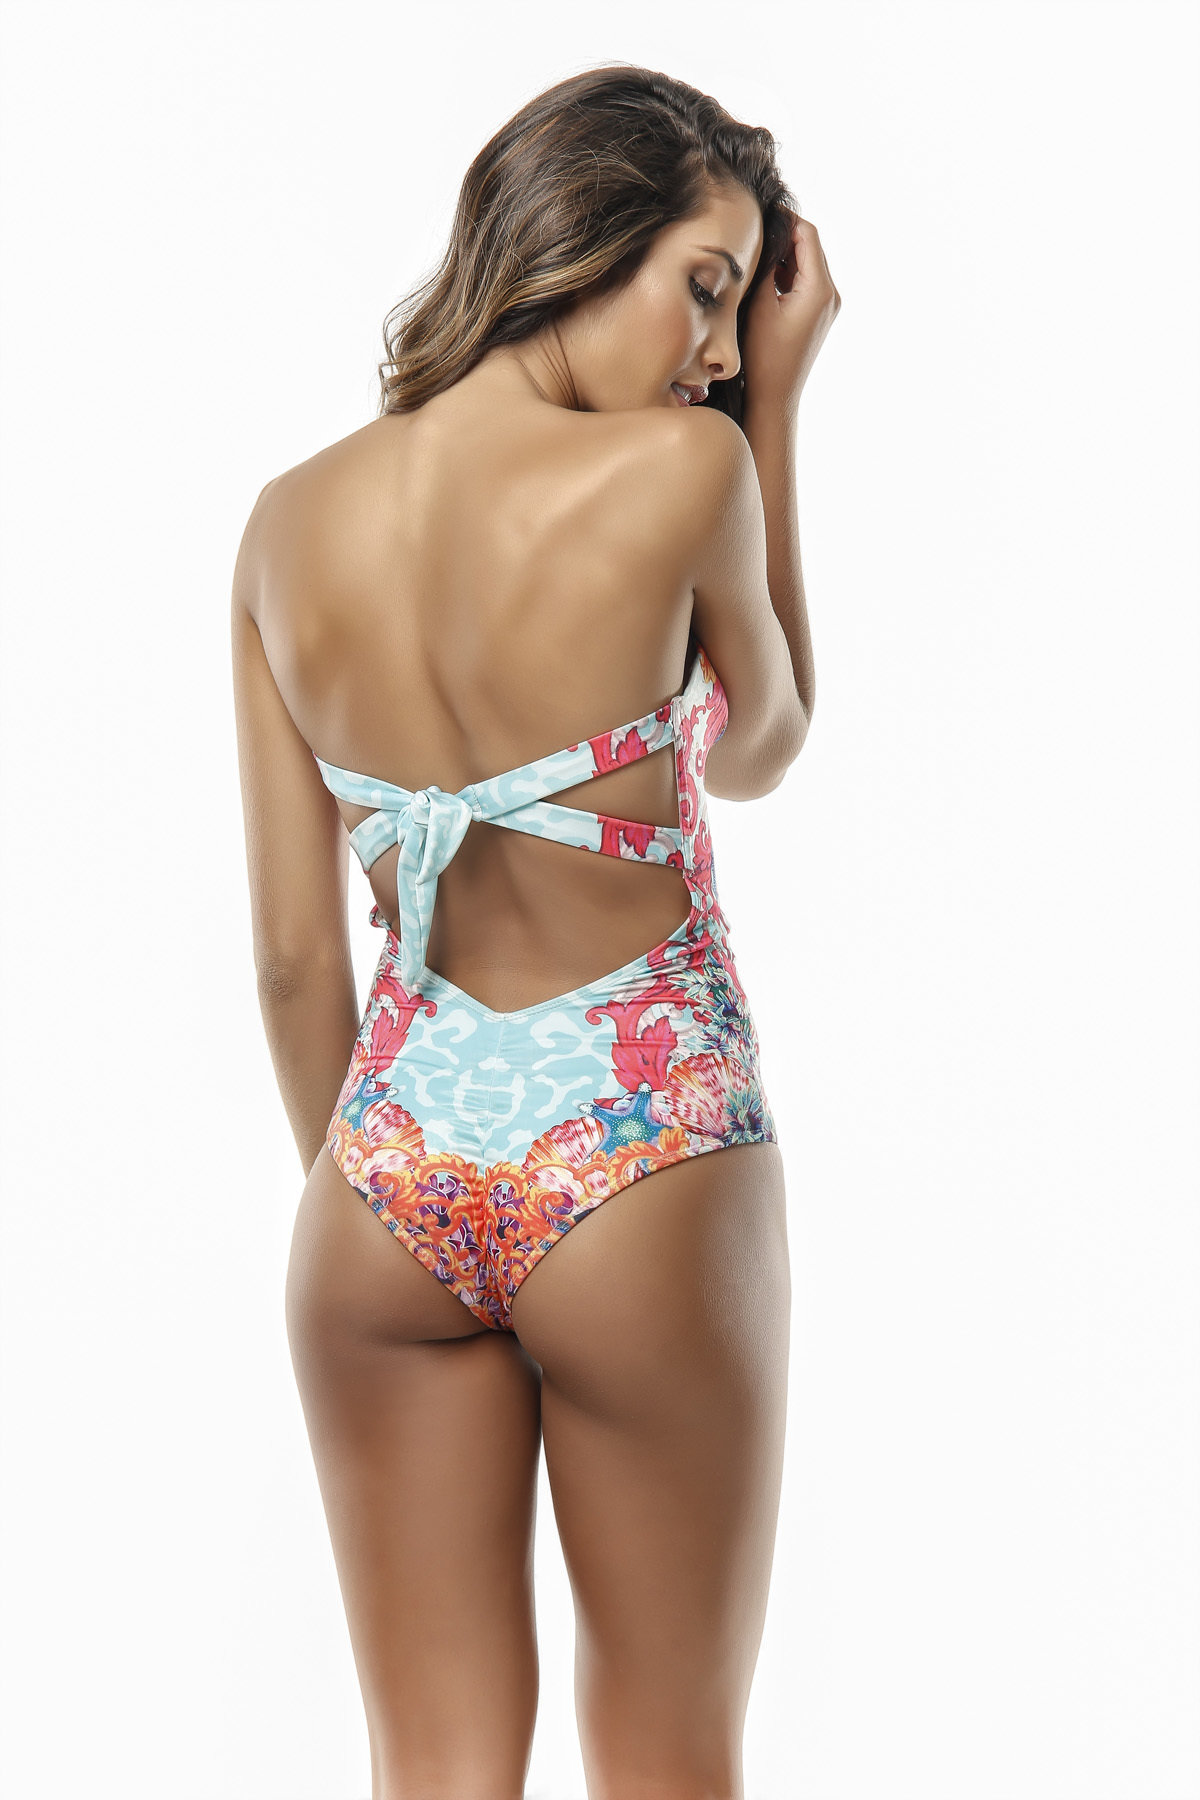 Paradizia Swimwear: Pink Coral Crystals Oceania One-Piece Swimsuit (3 Left!)